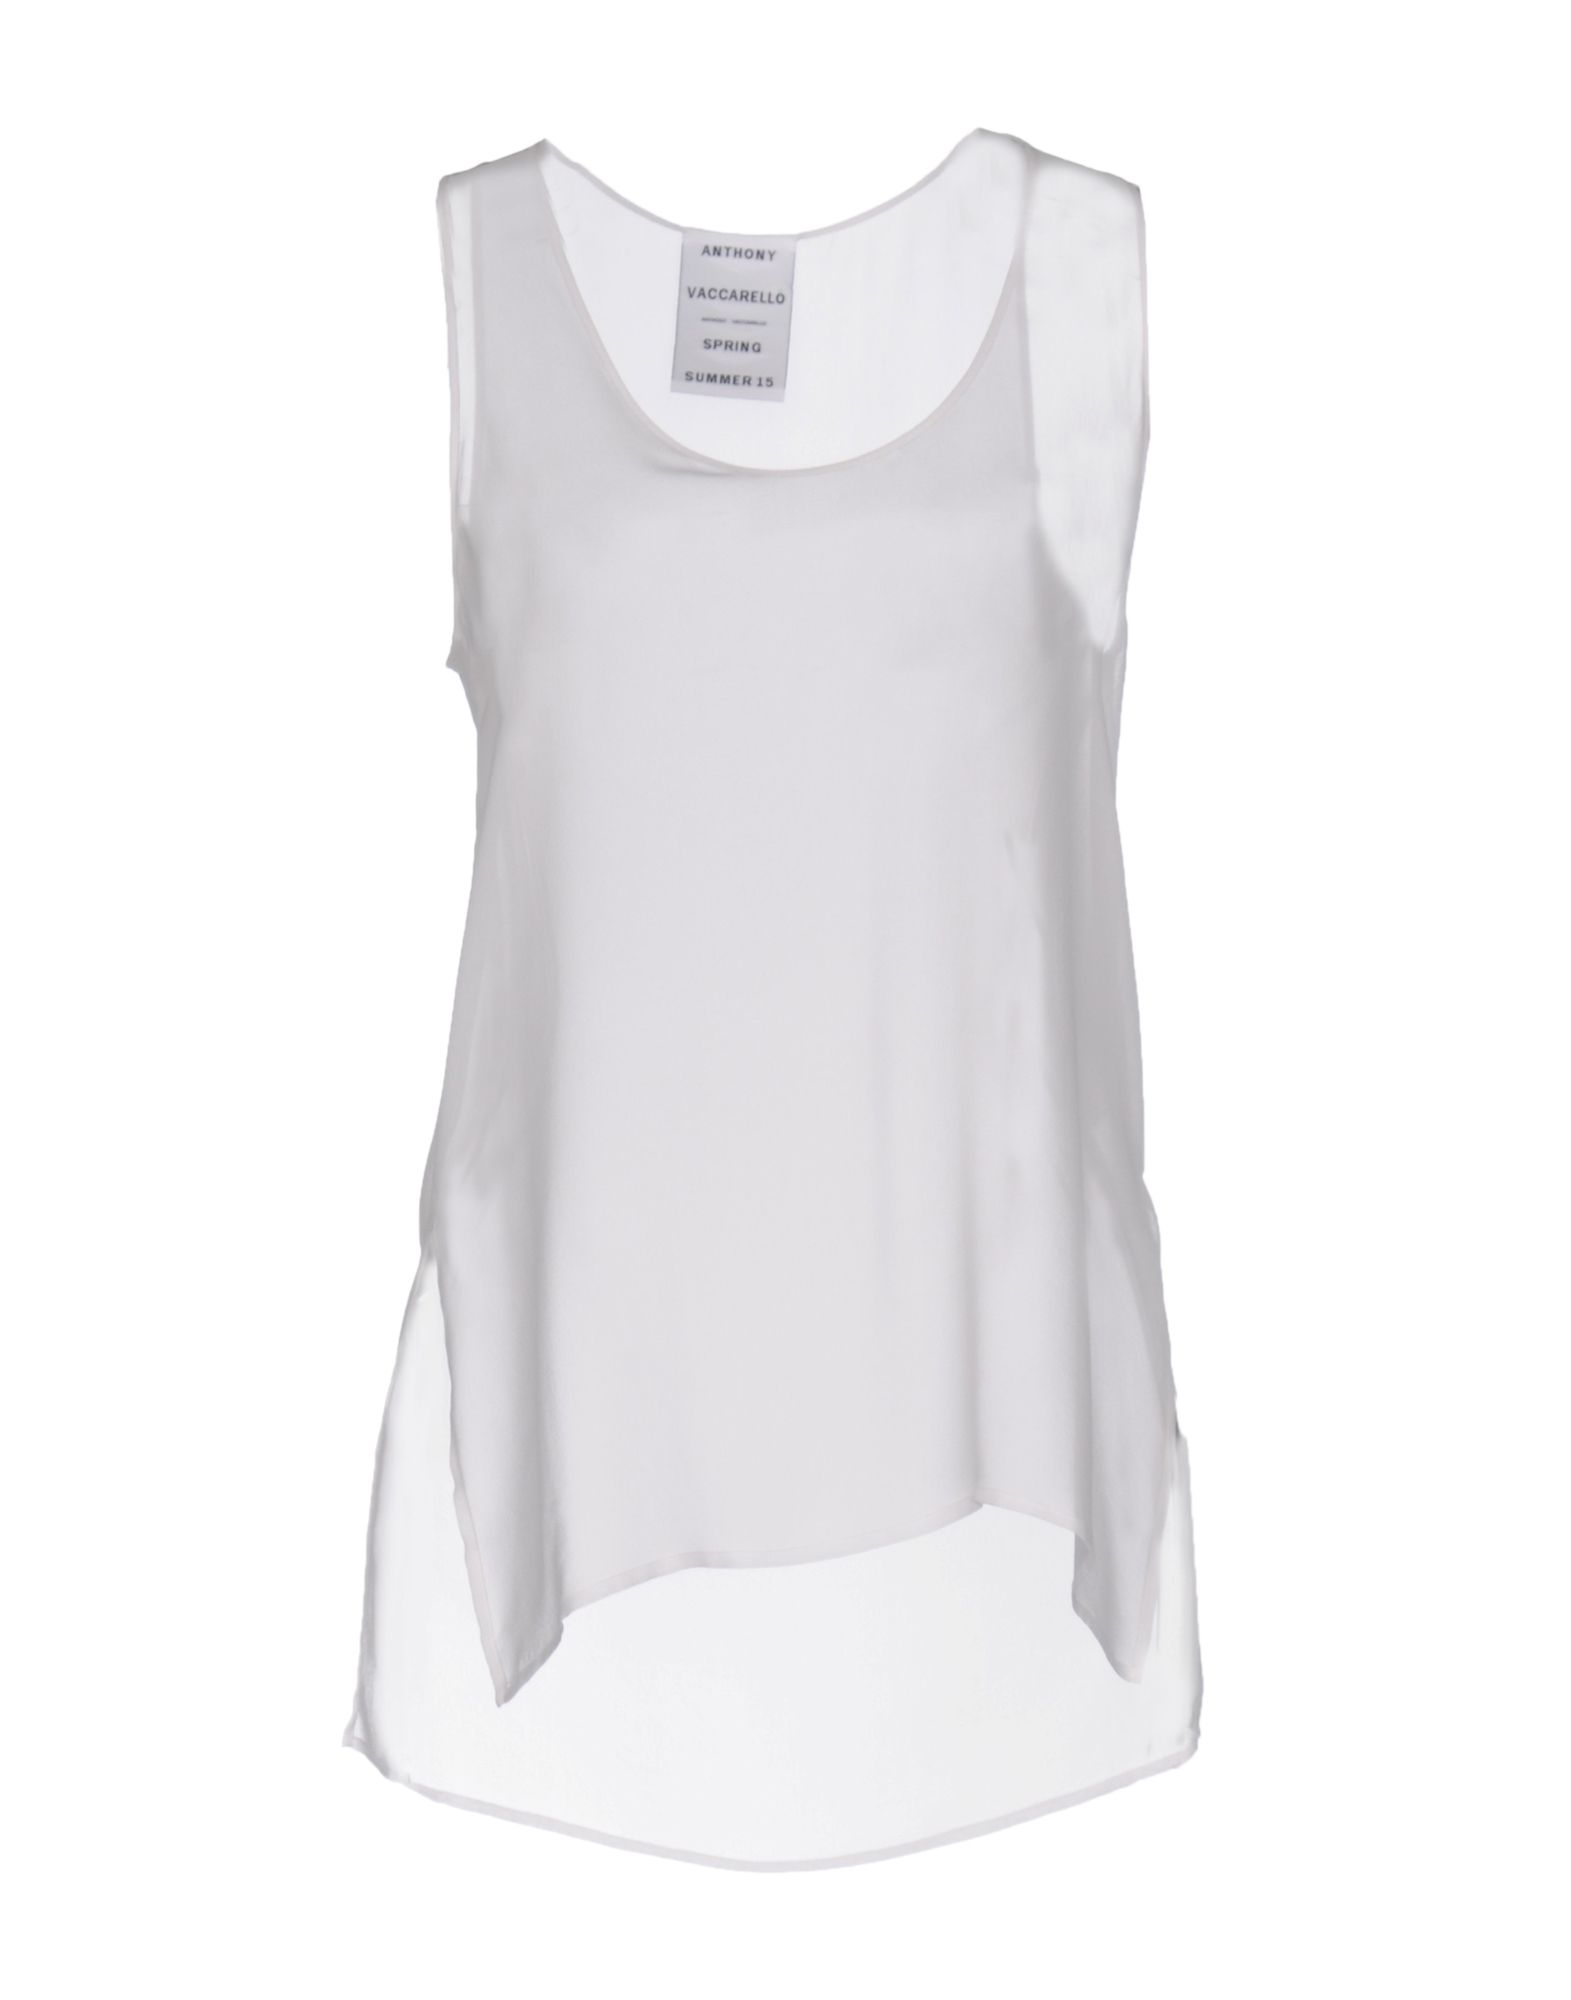 ANTHONY VACCARELLO Silk Top in White